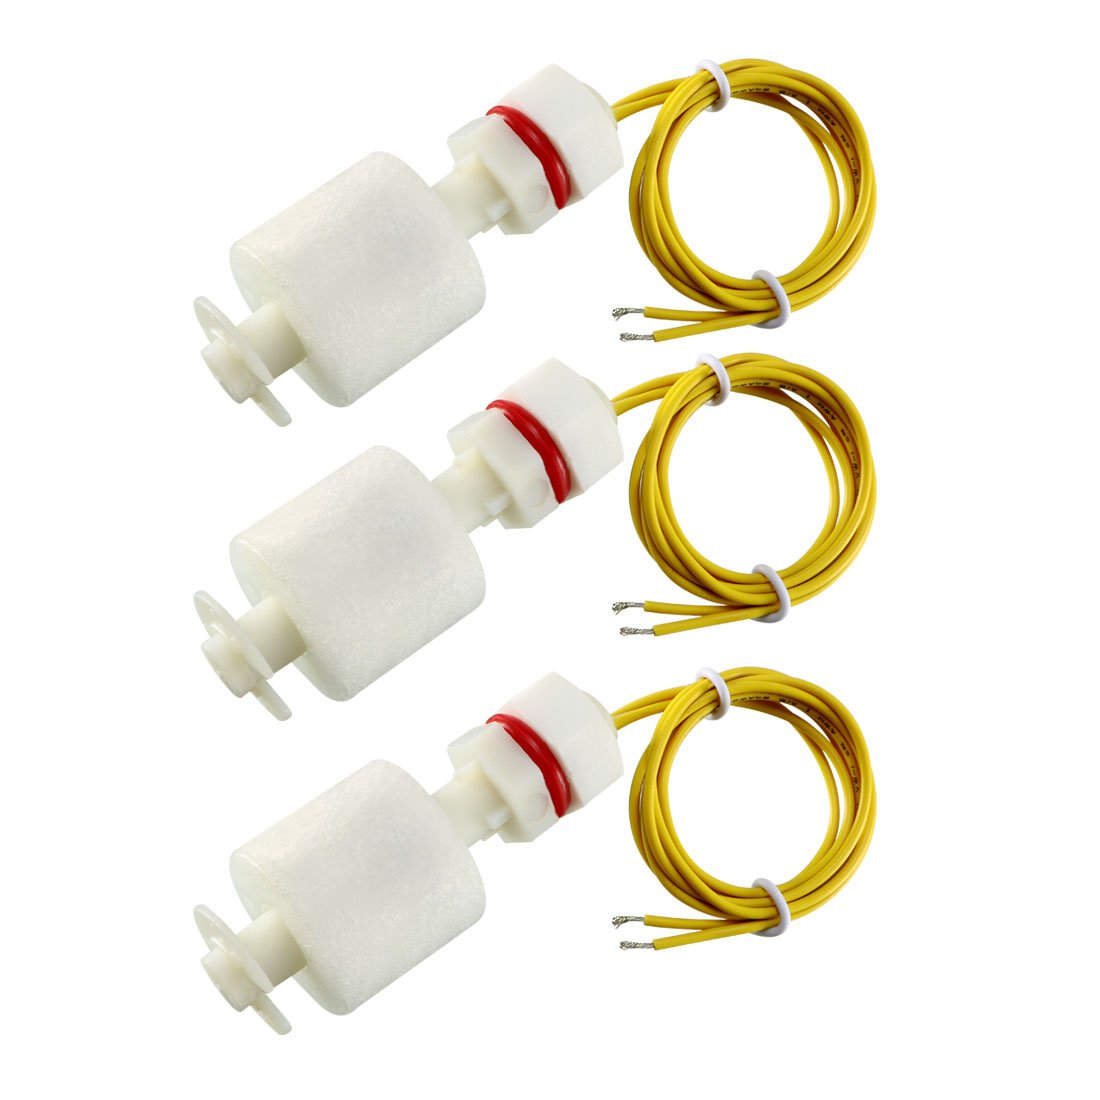 uxcell 3 Pcs ZP4510 Liquid Water Level Control Sensor Straight Float Switch - - Amazon.com